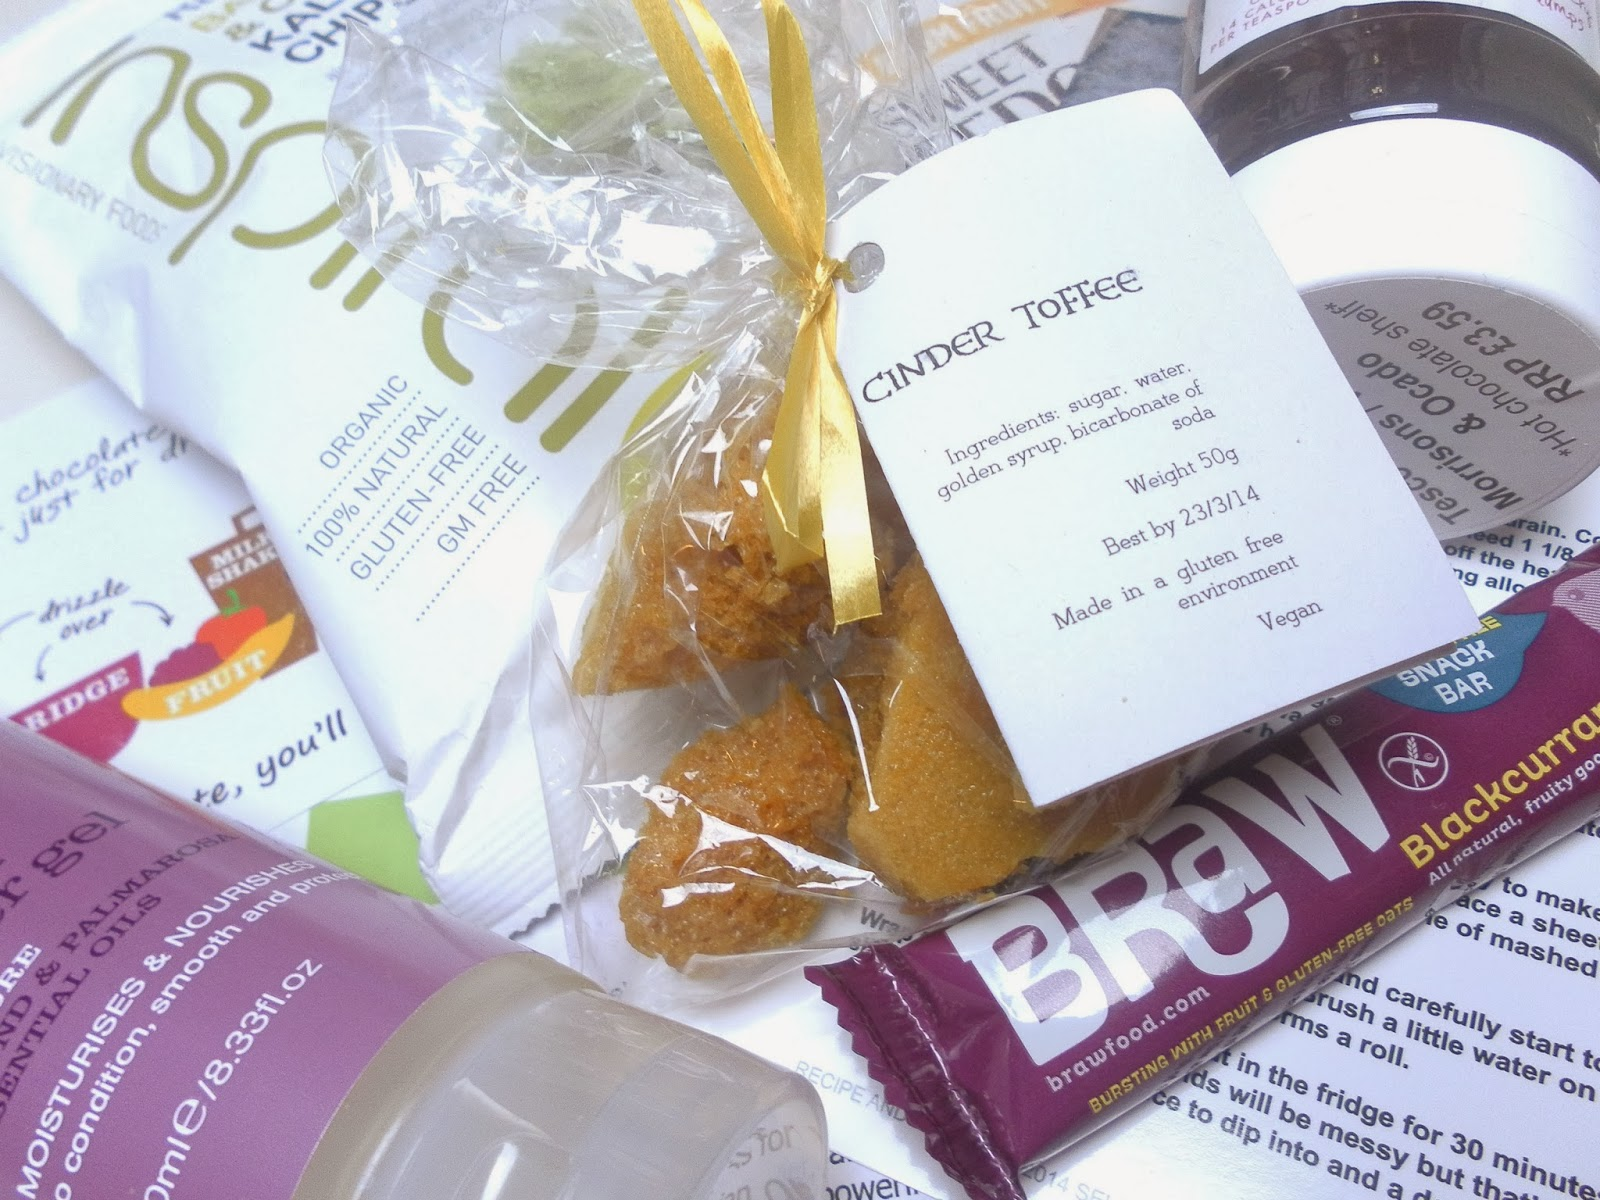 February TheVeganKind box